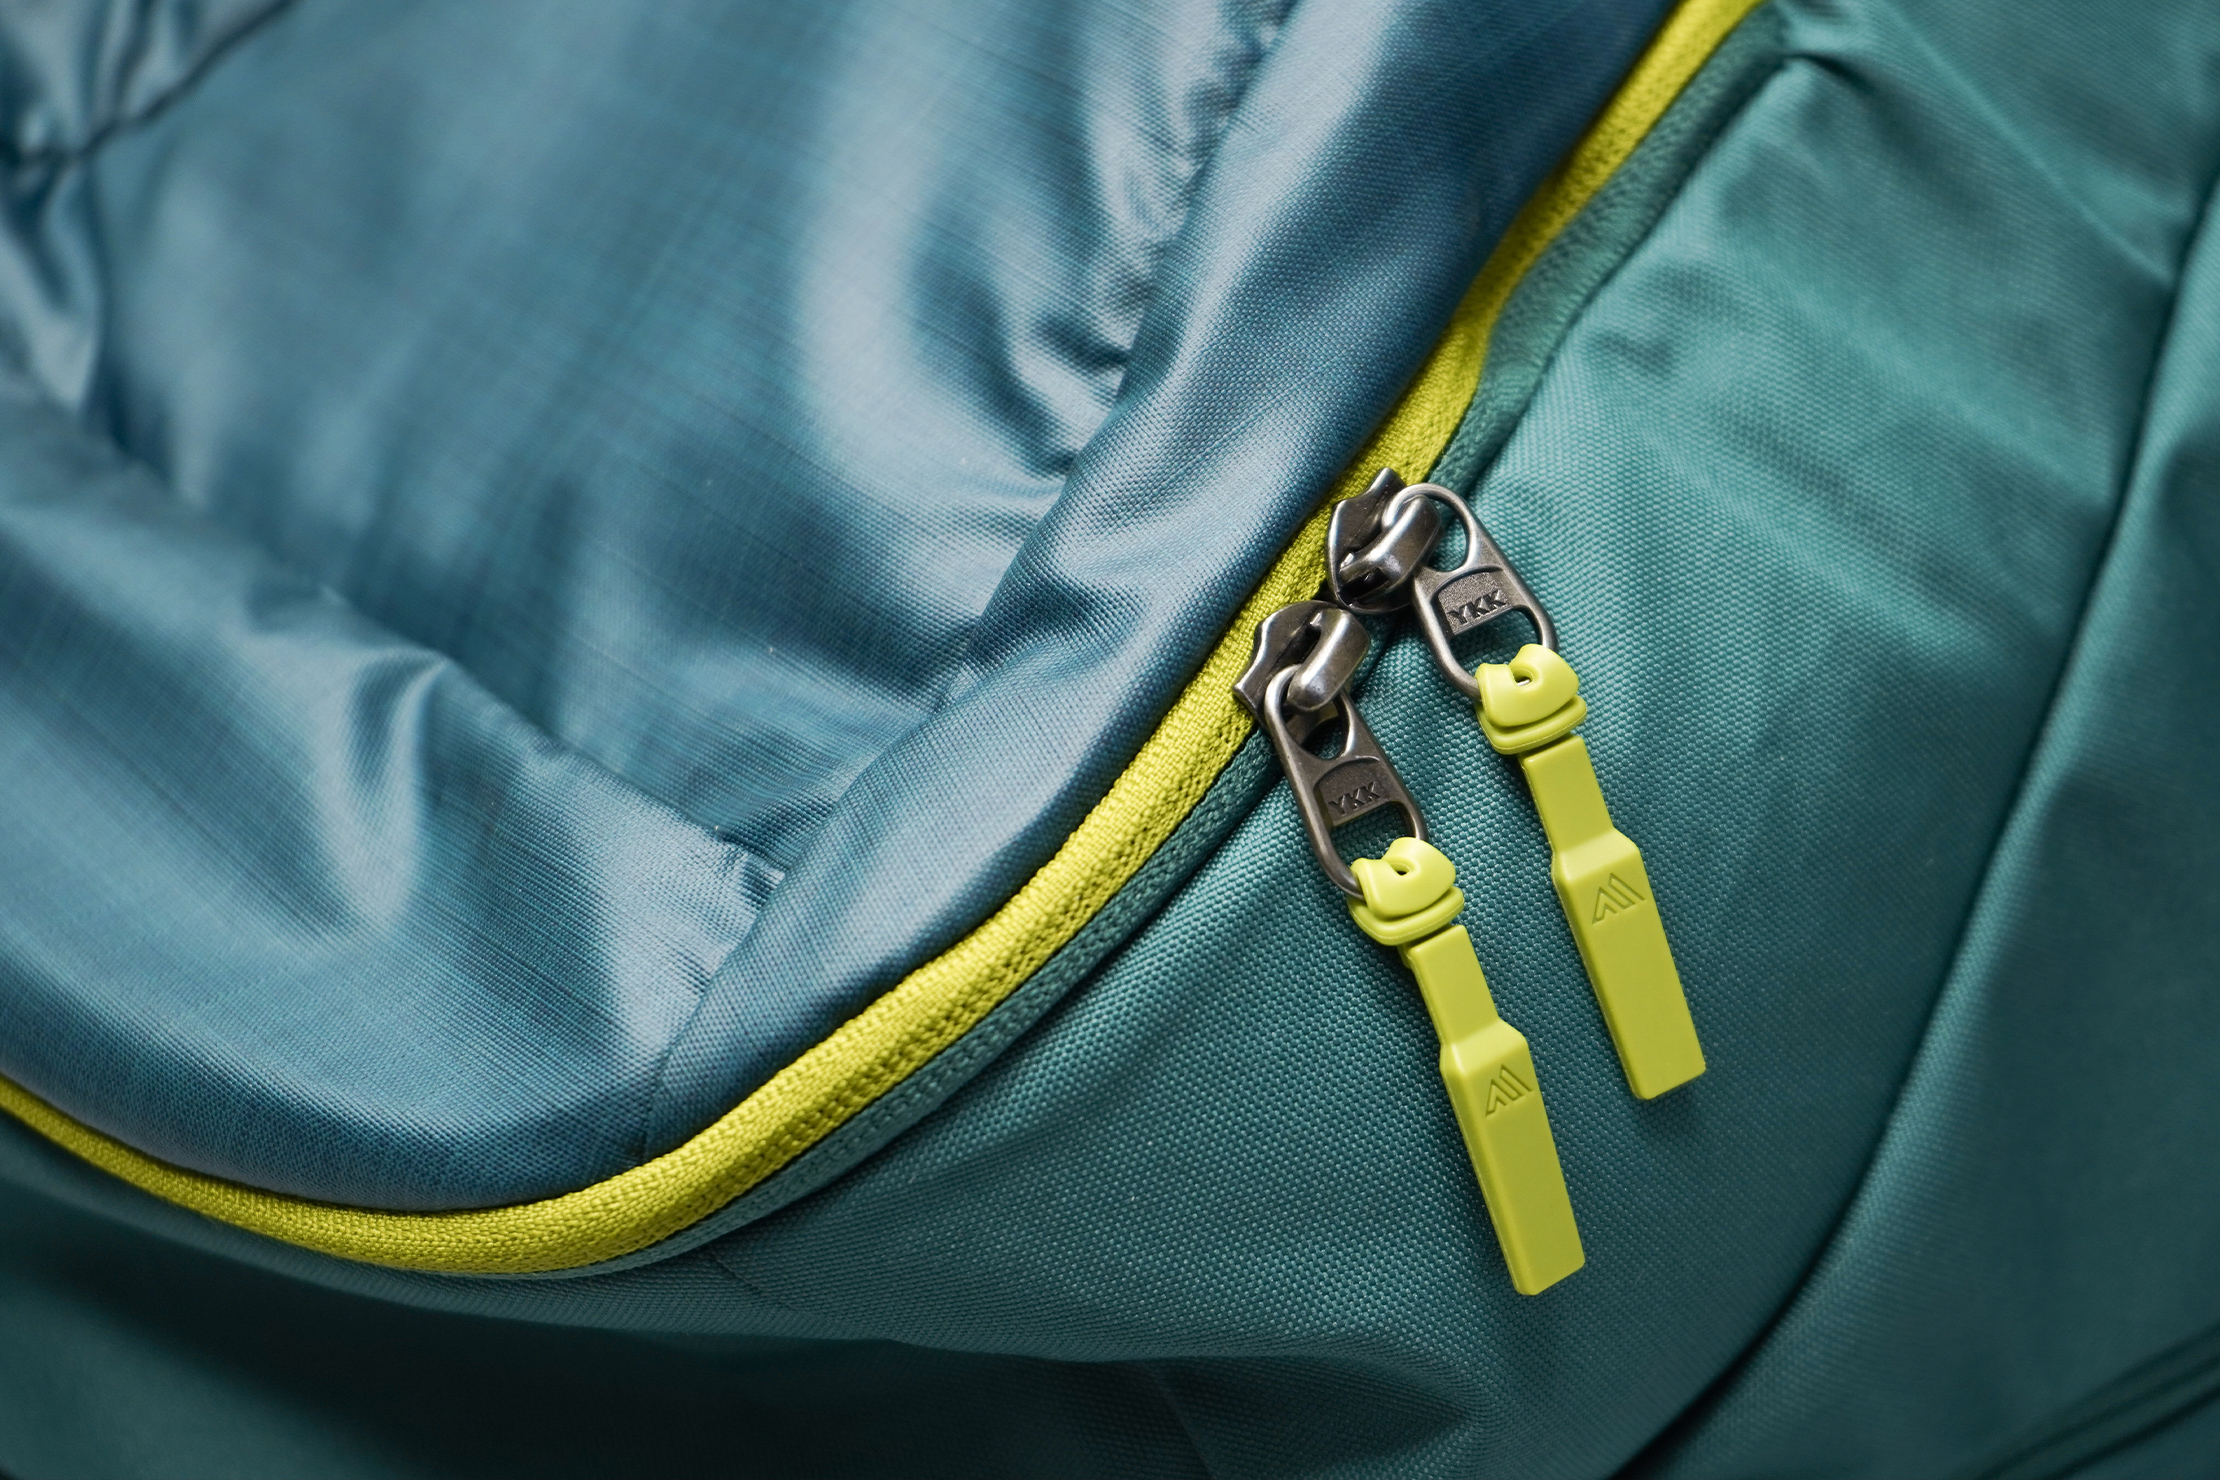 Gregory Resin 26 Backpack Zippers